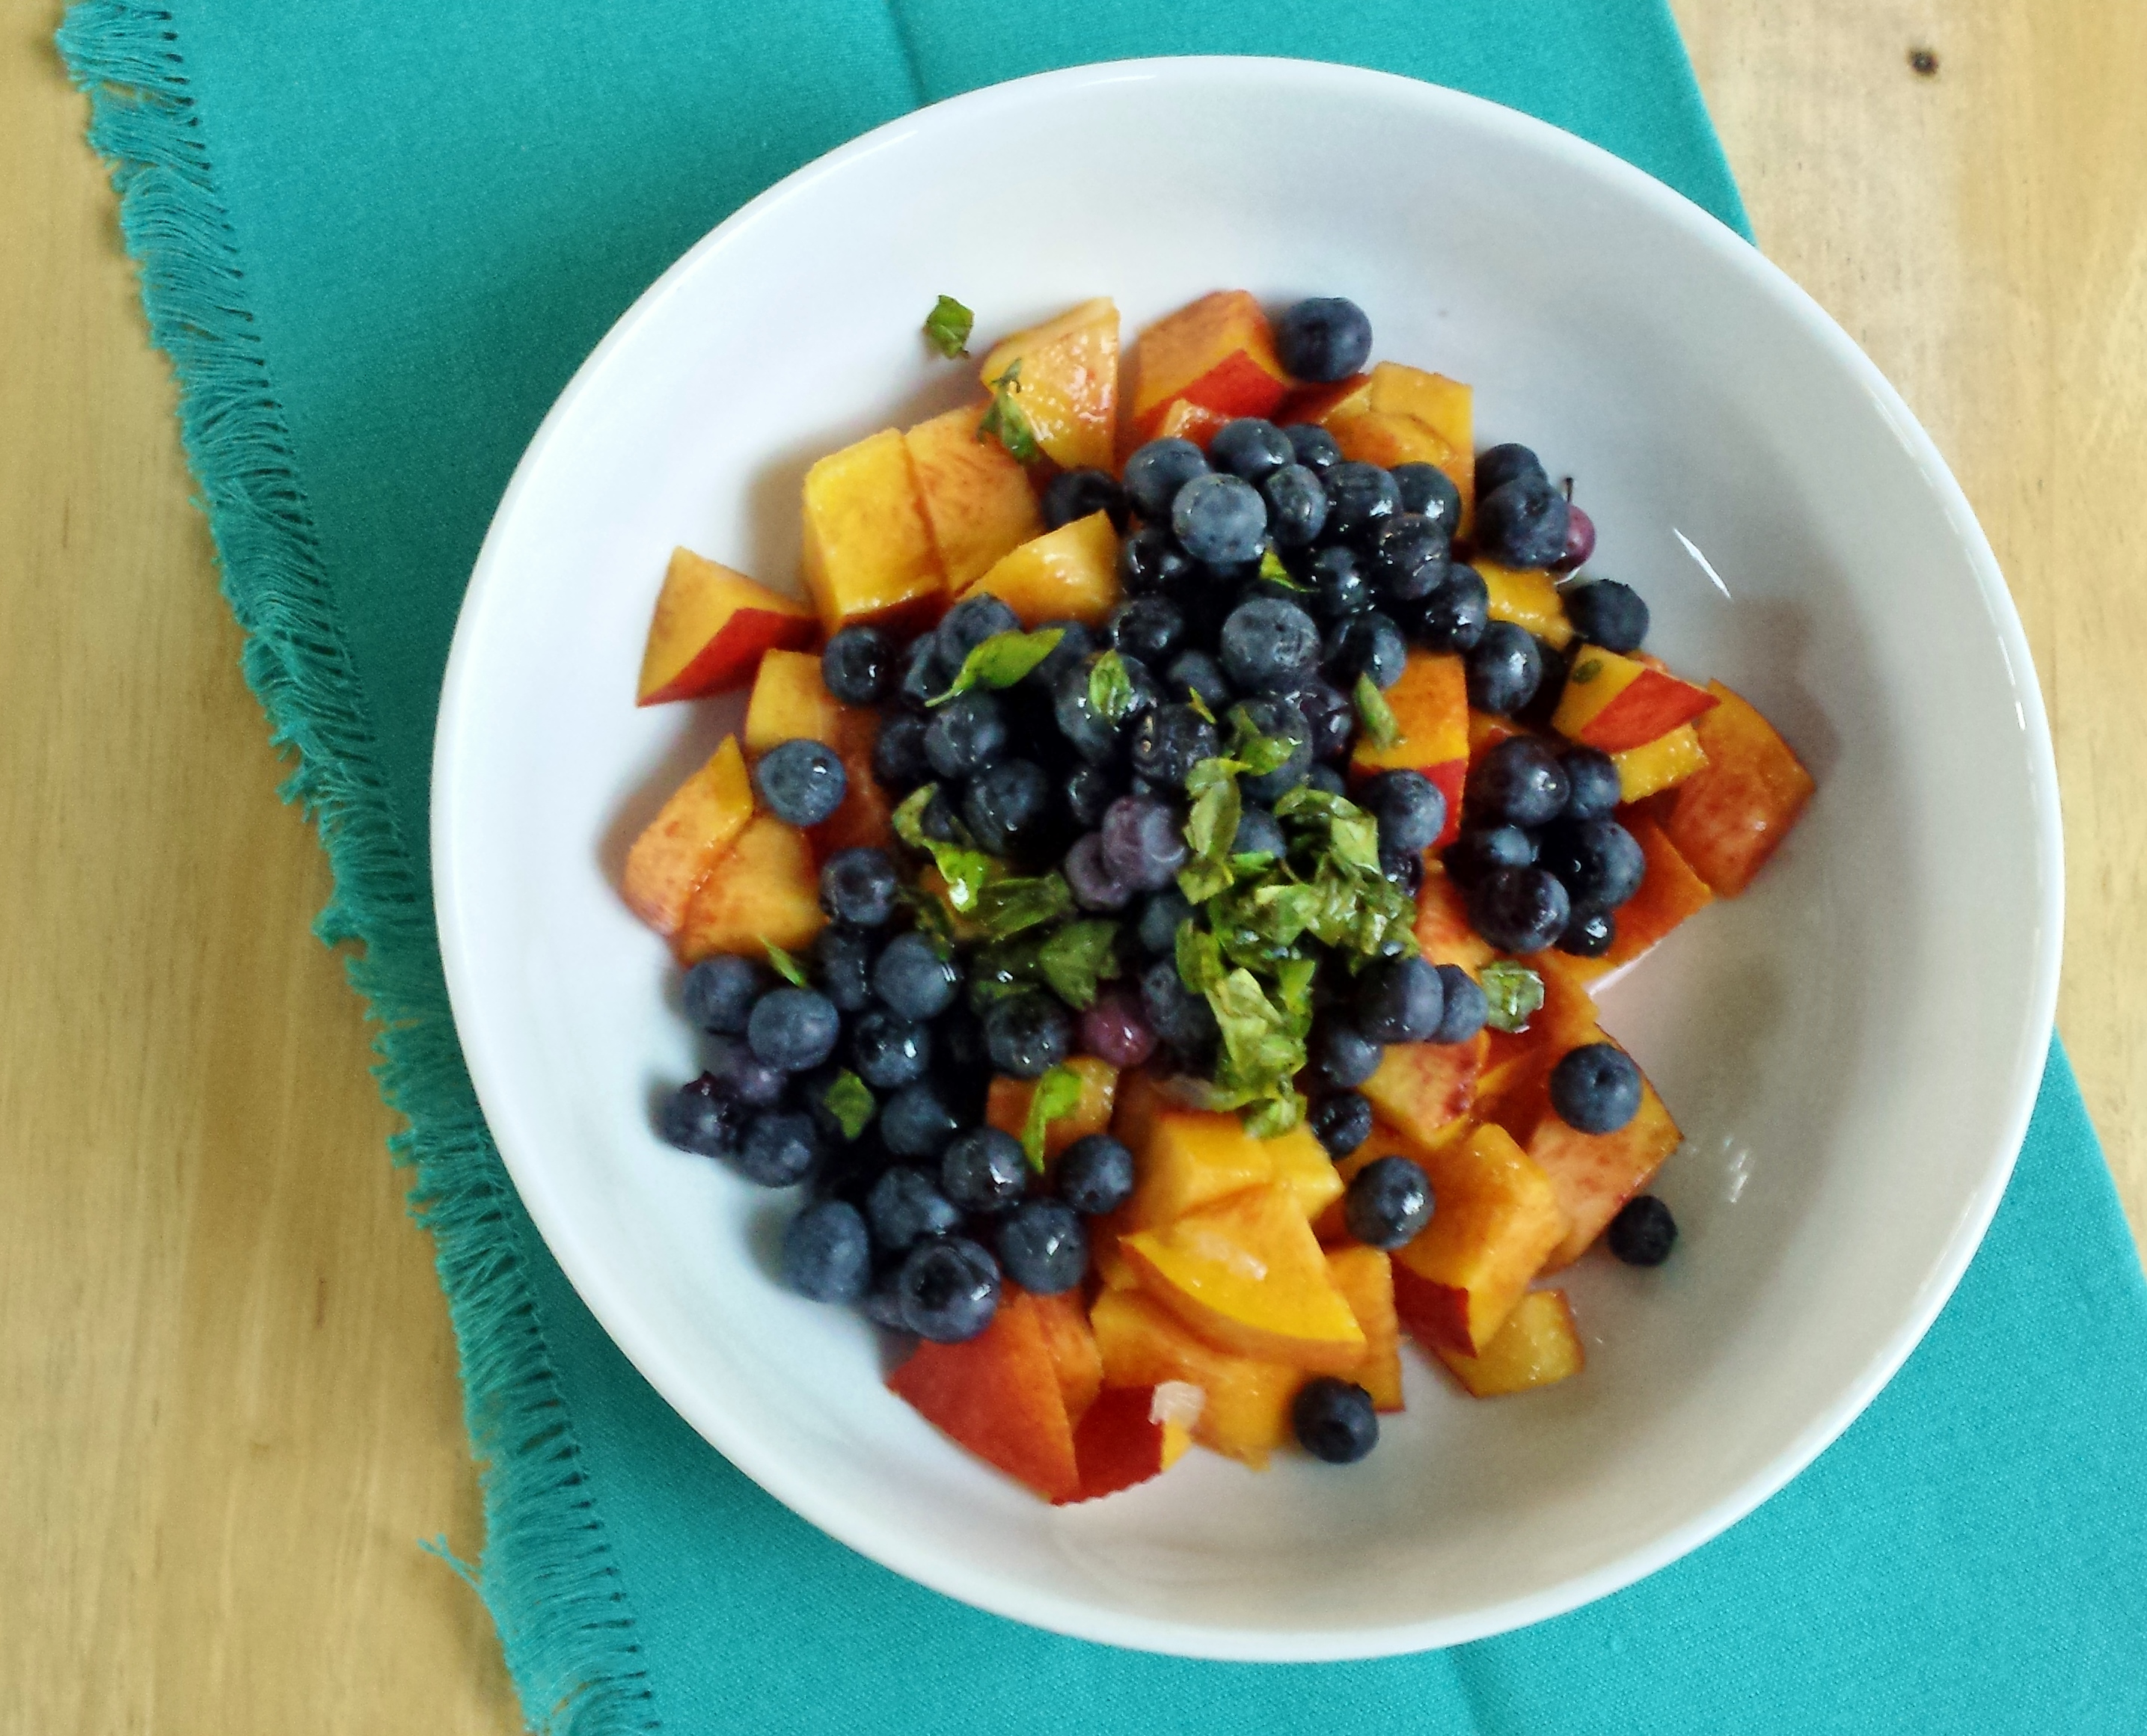 Super-Easy, Totally Un-Blah Fruit Salad #2: Nectarine, Blueberry, and Basil